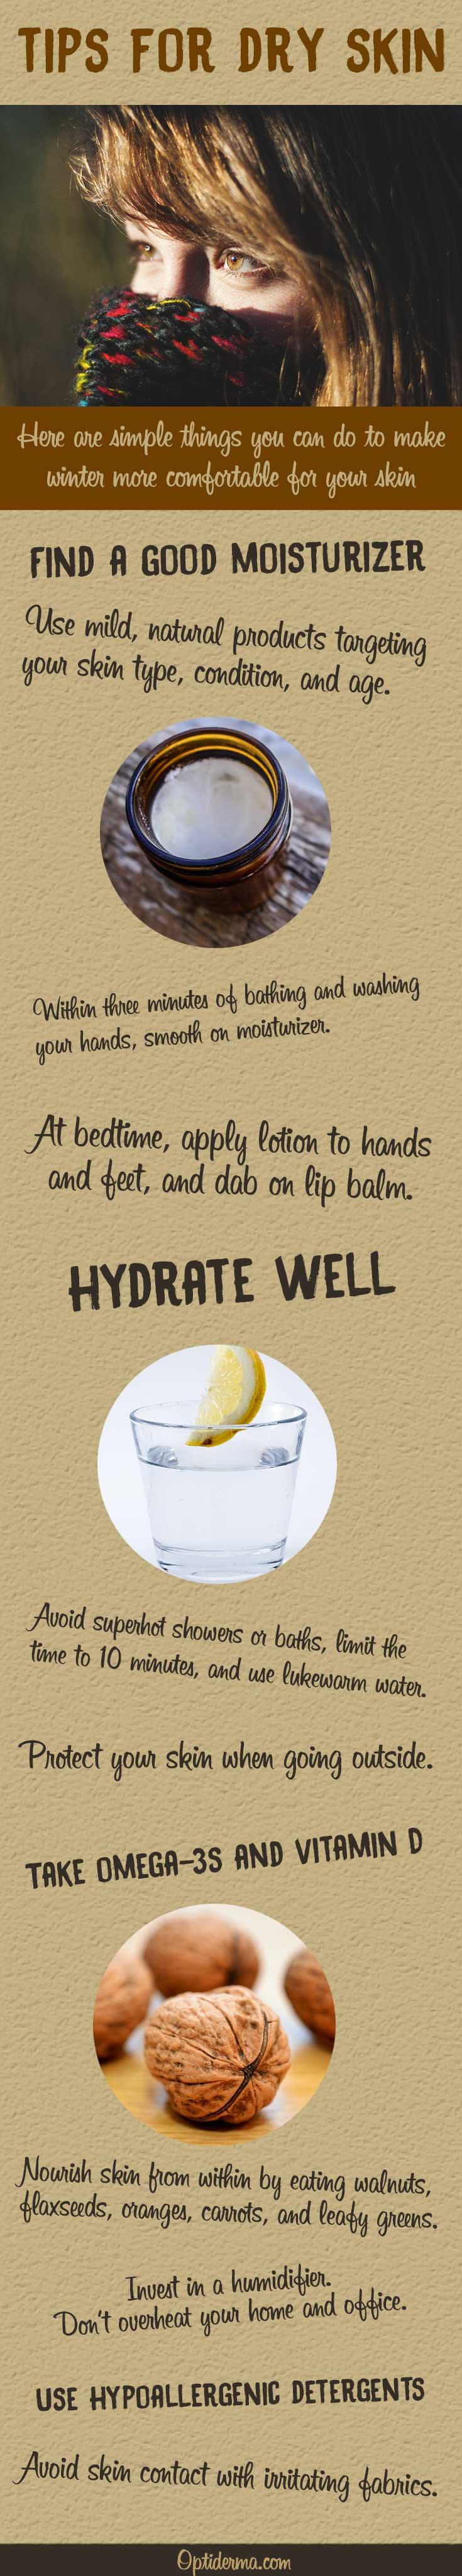 Tips to Relieve Dry Skin in Winter - Infographic